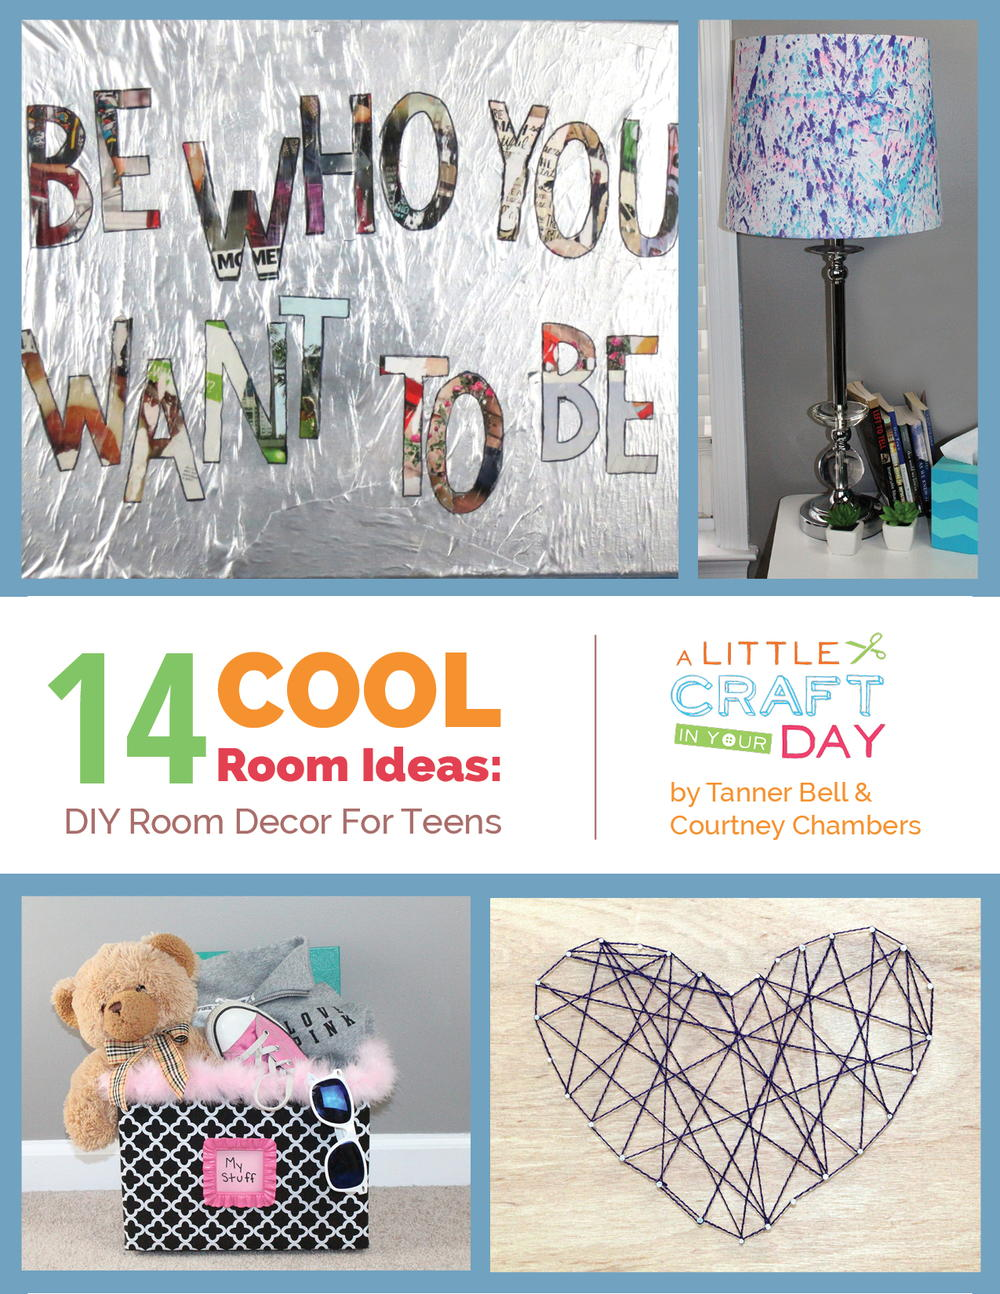 14 Cool Room Ideas  DIY Room Decor for Teens free eBook    AllFreeKidsCrafts com. 14 Cool Room Ideas  DIY Room Decor for Teens free eBook